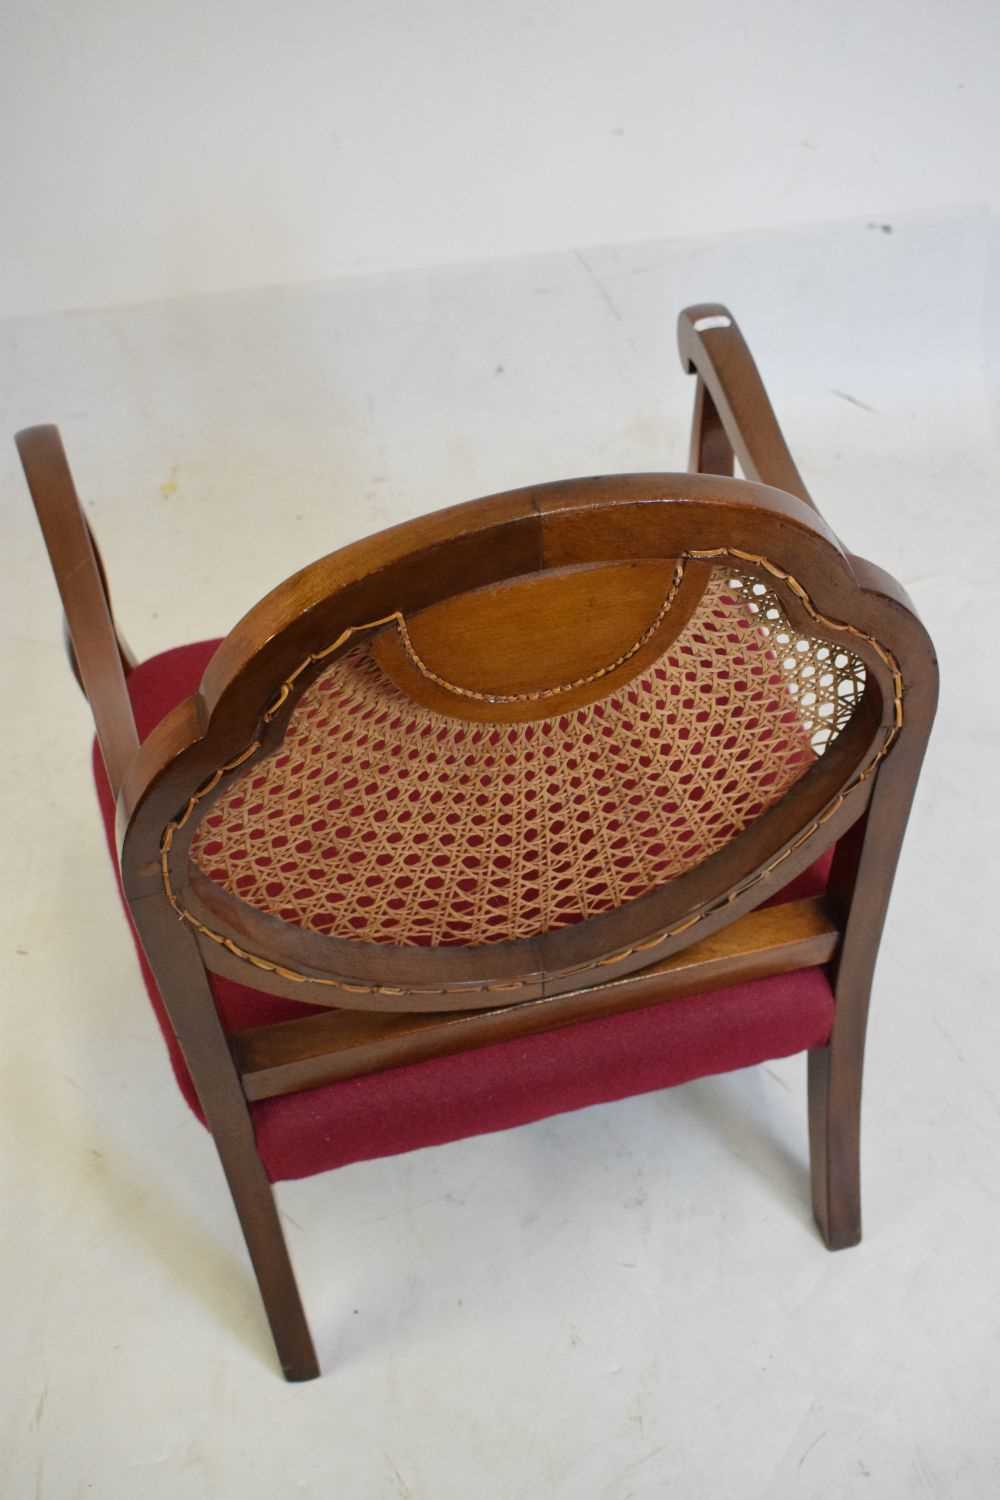 1920's mahogany and cane bergere chair - Image 4 of 5